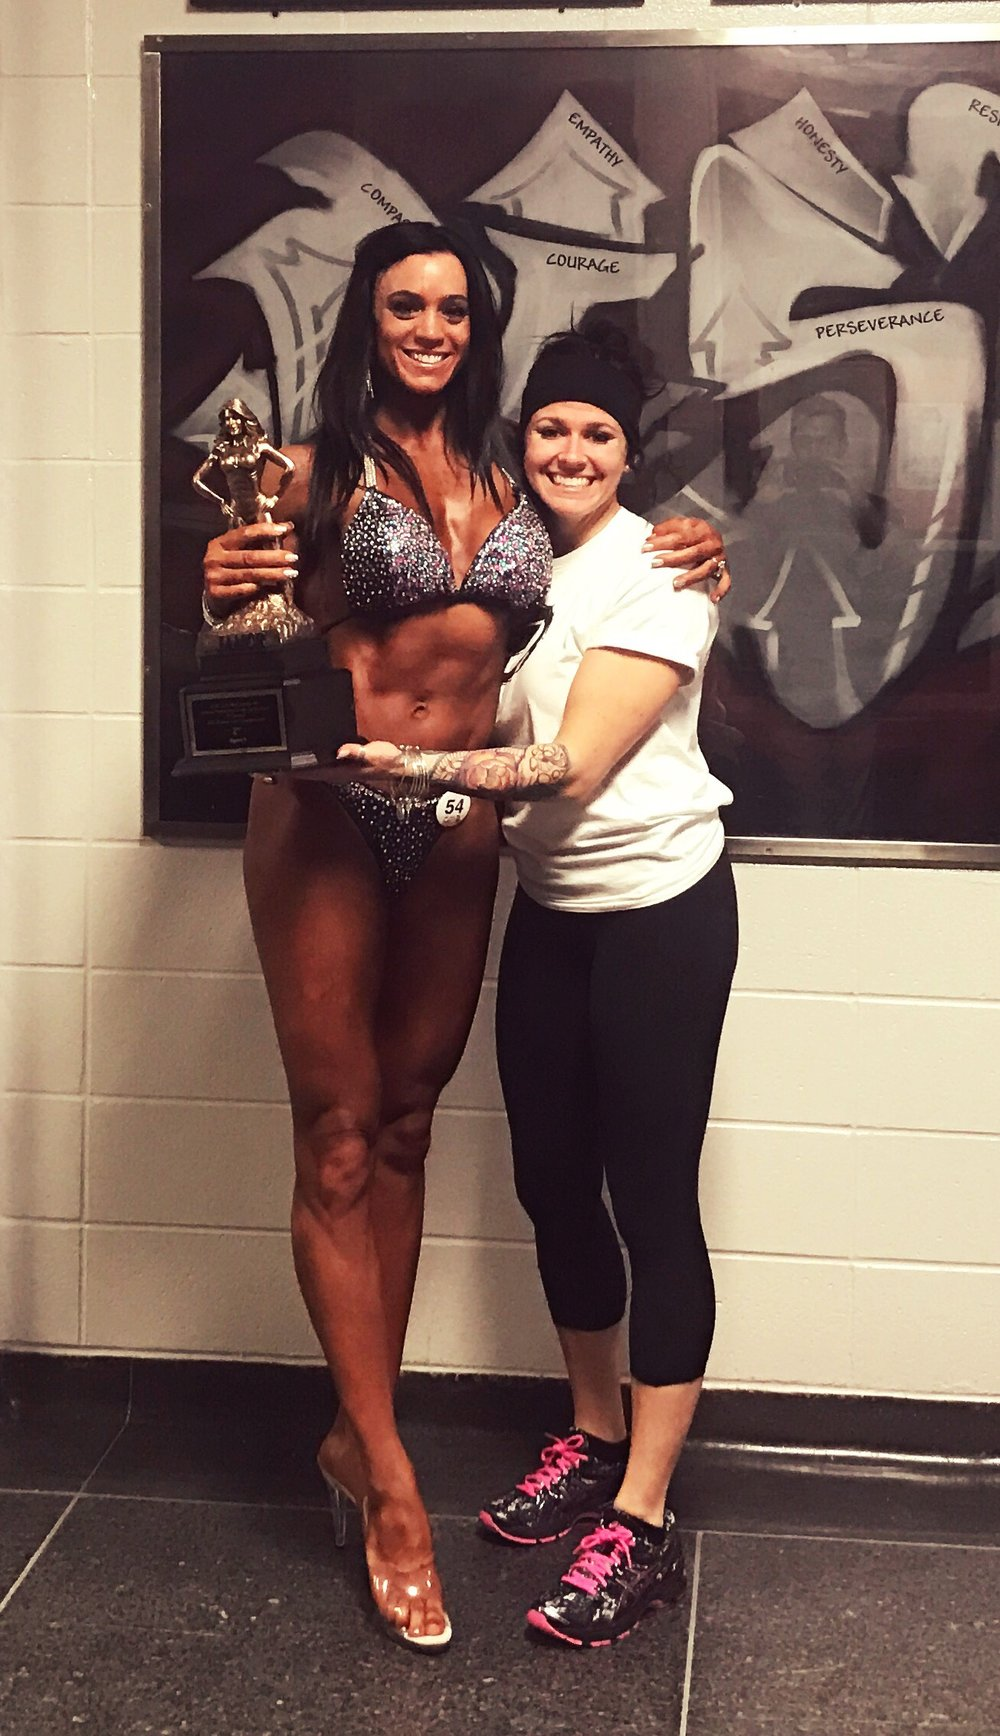 Pam took 1st place in her figure category.